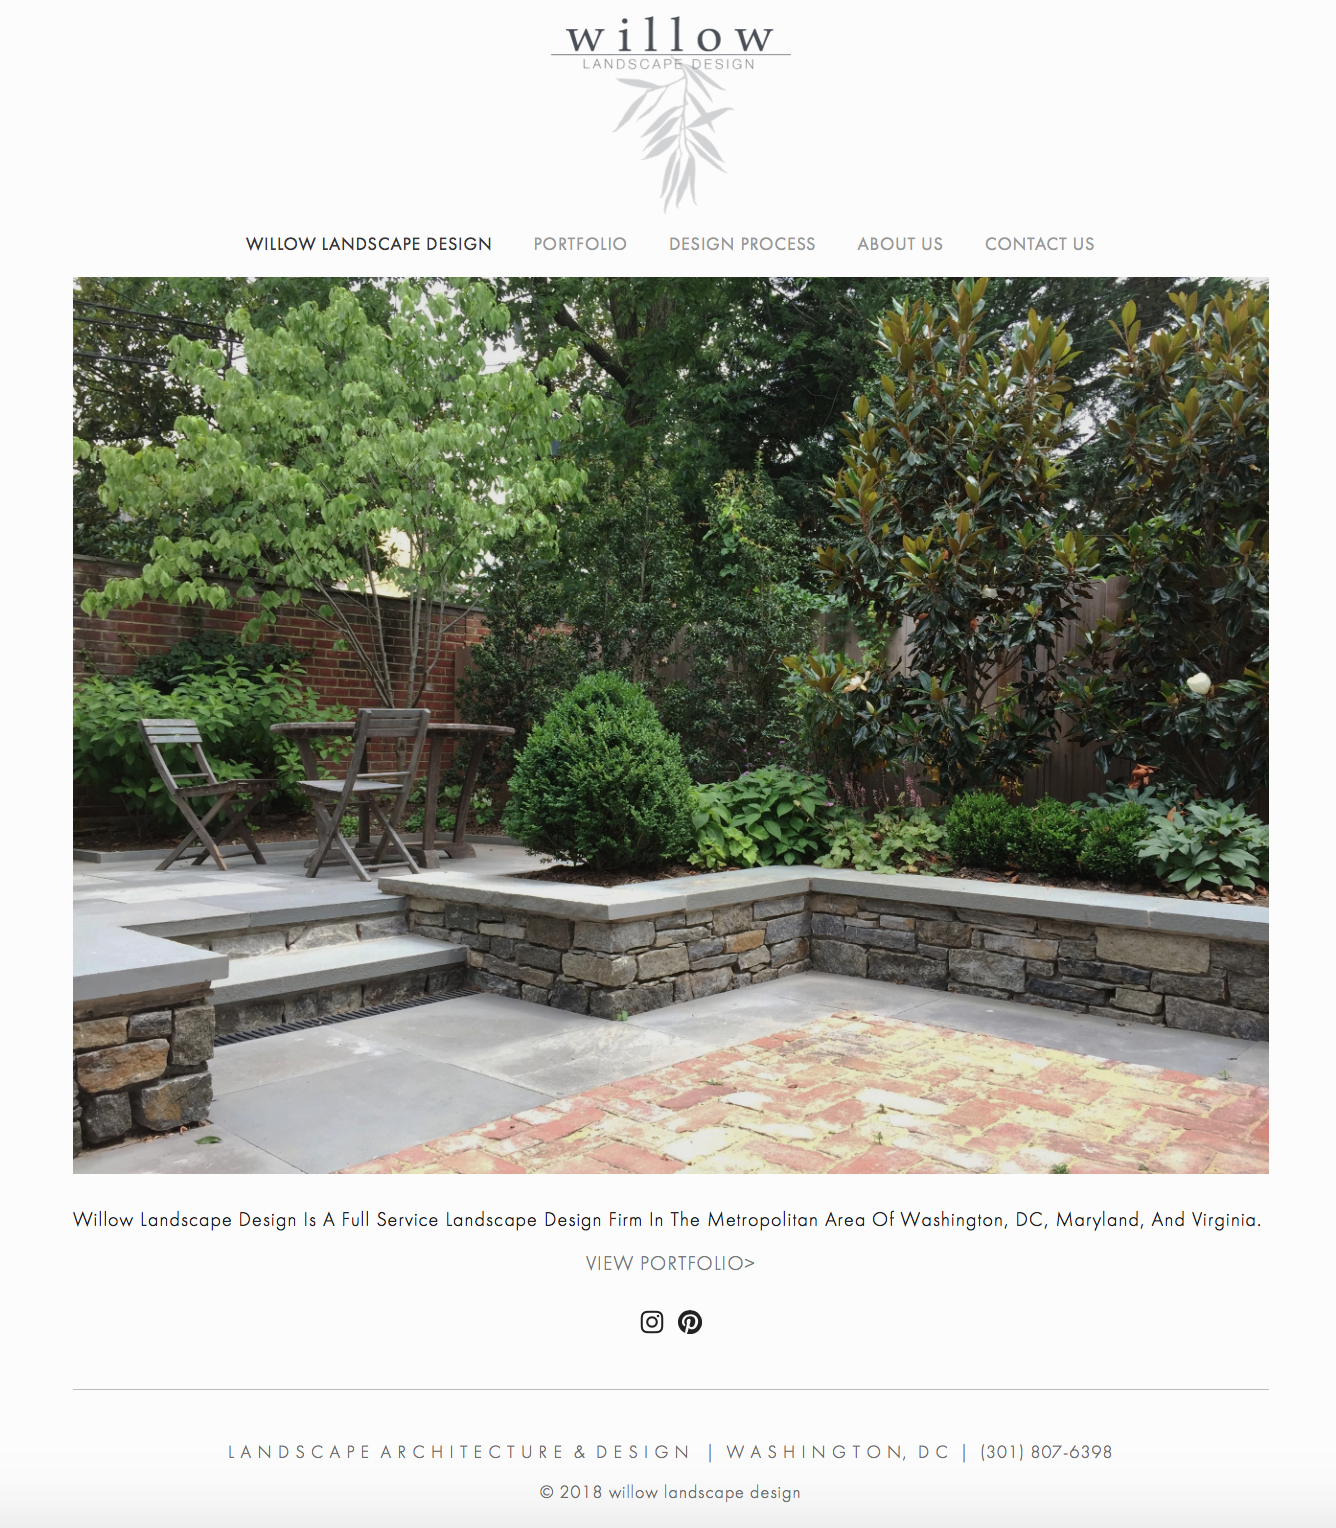 WILLOW_WEBSITE_FRONTPAGE.png